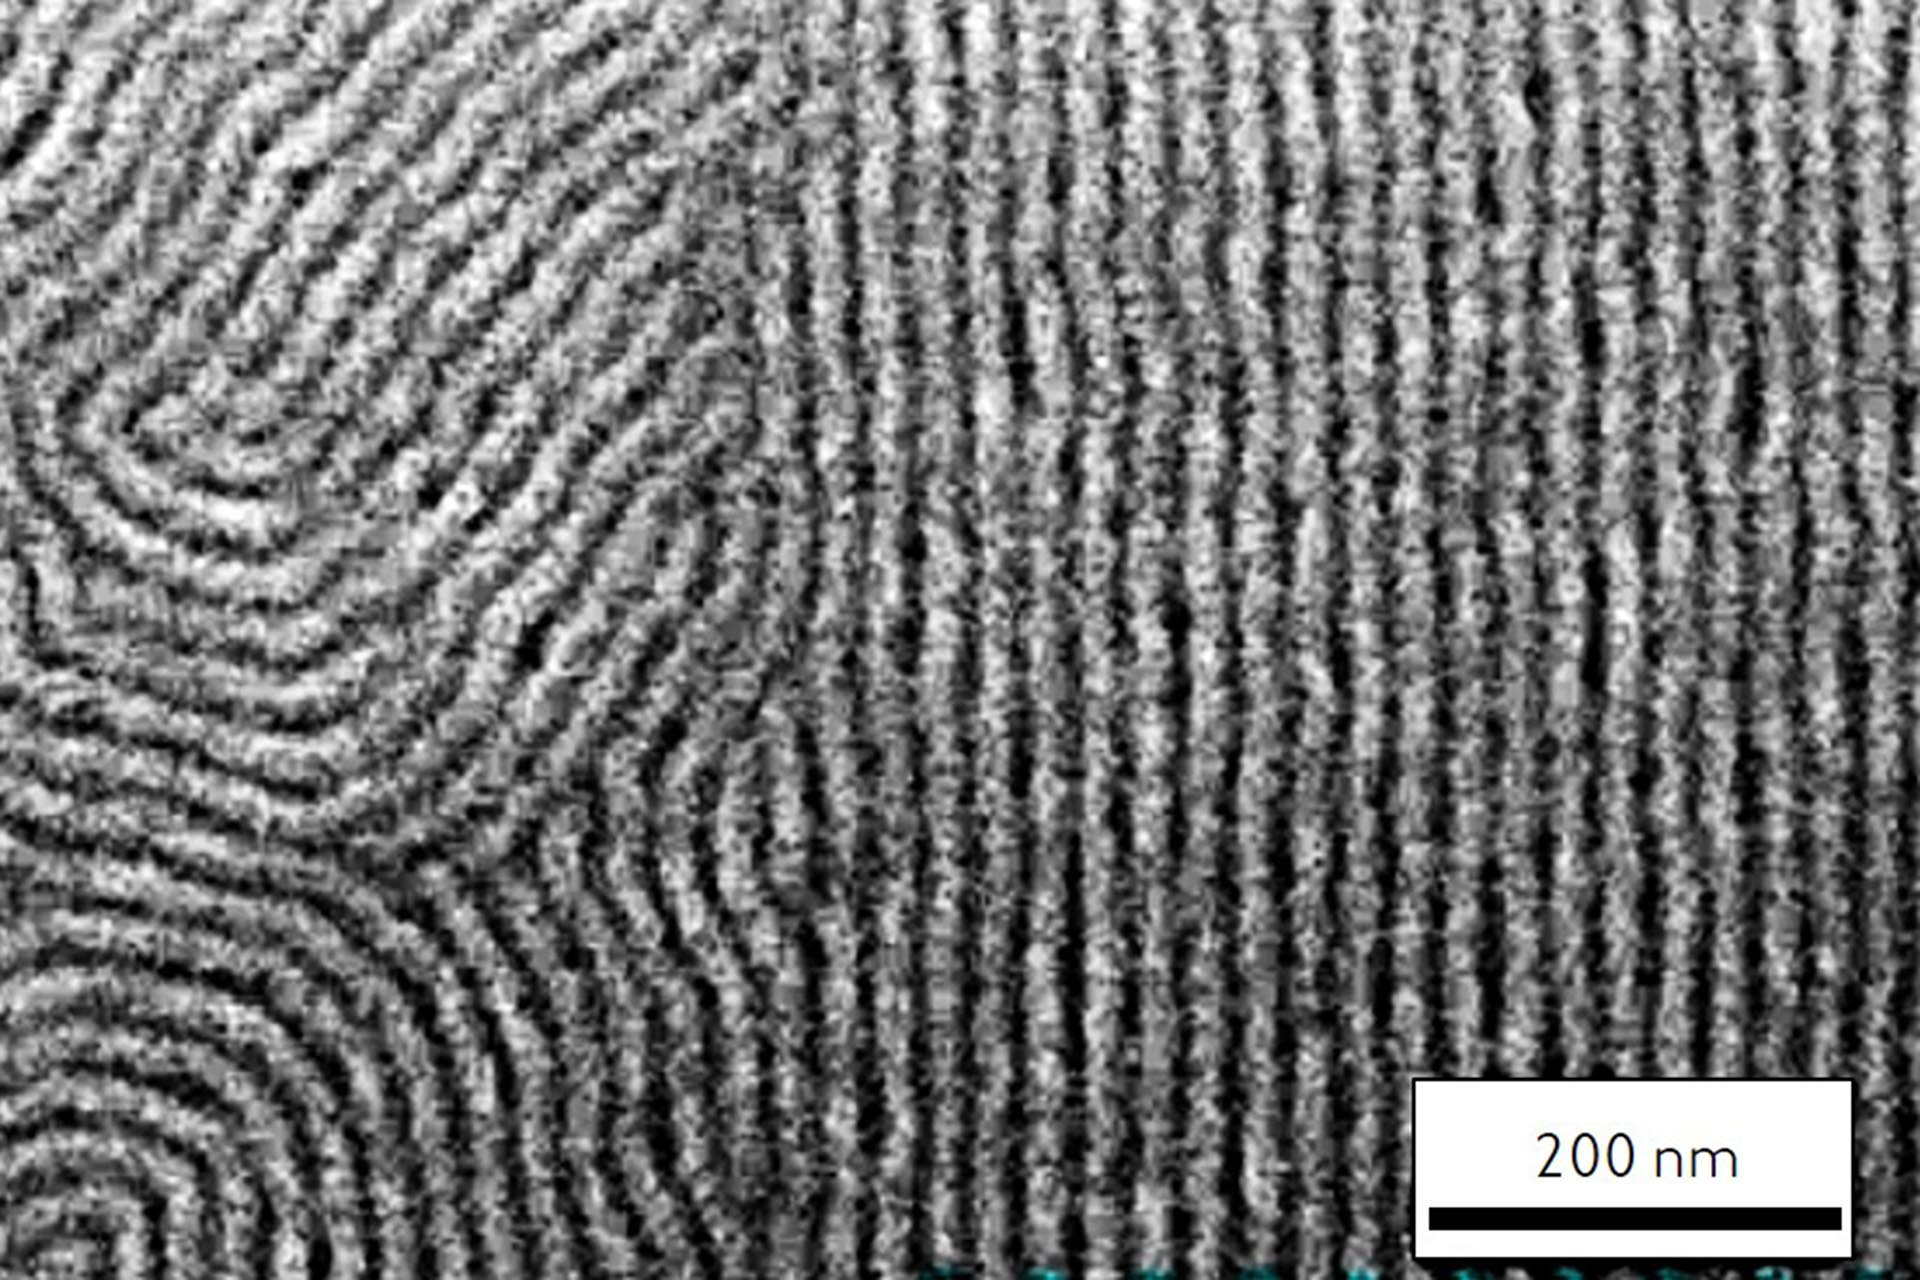 Directed self-assembly of PS-b-PMMA lamellae